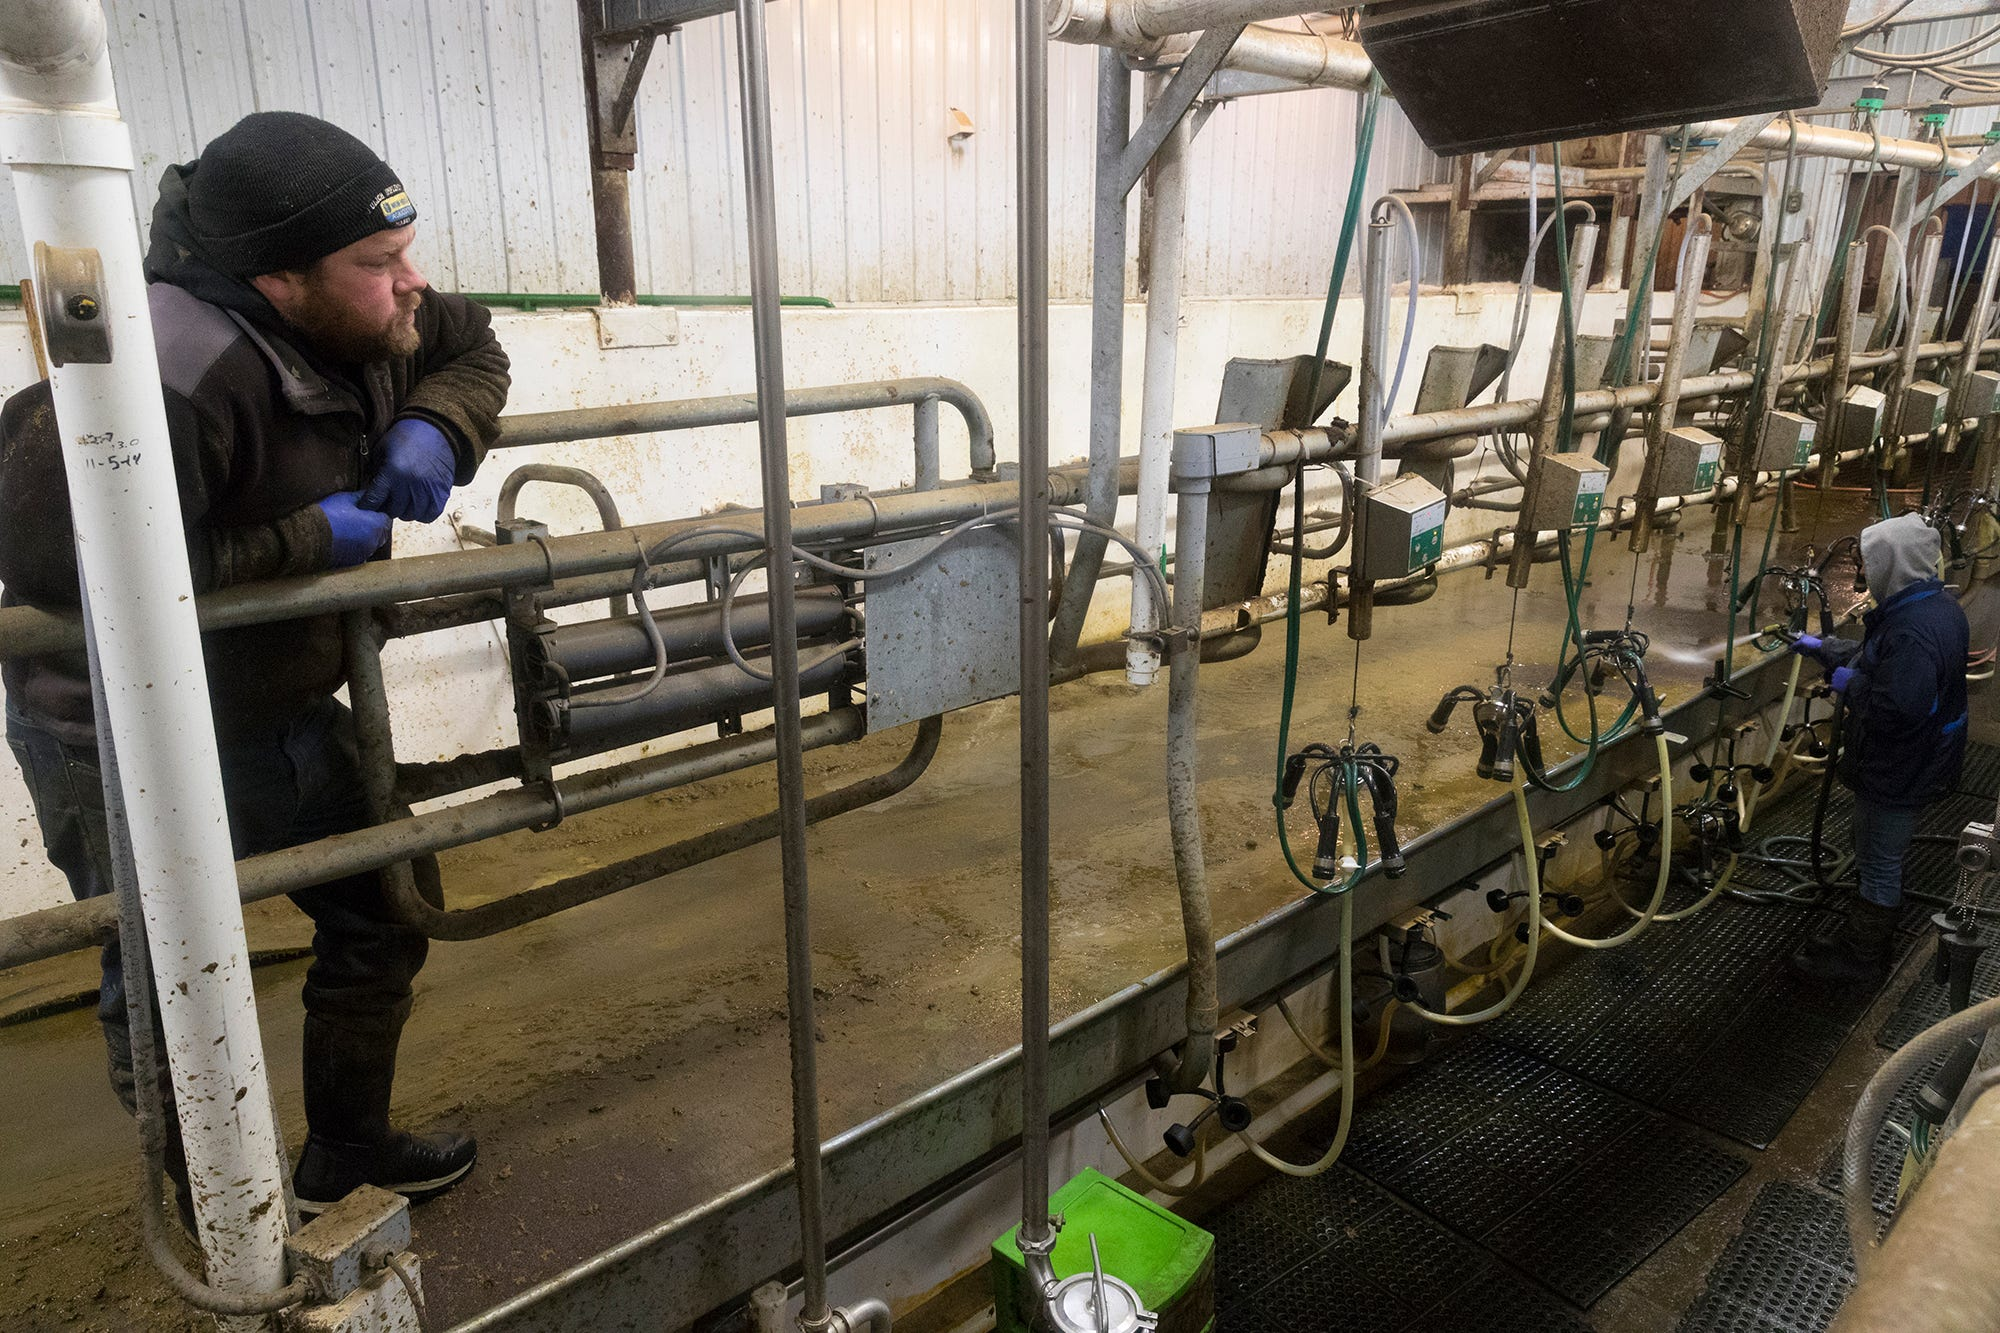 Peter Thewis (left) talks with his wife, Kendra, while doing morning chores in the milking parlor.